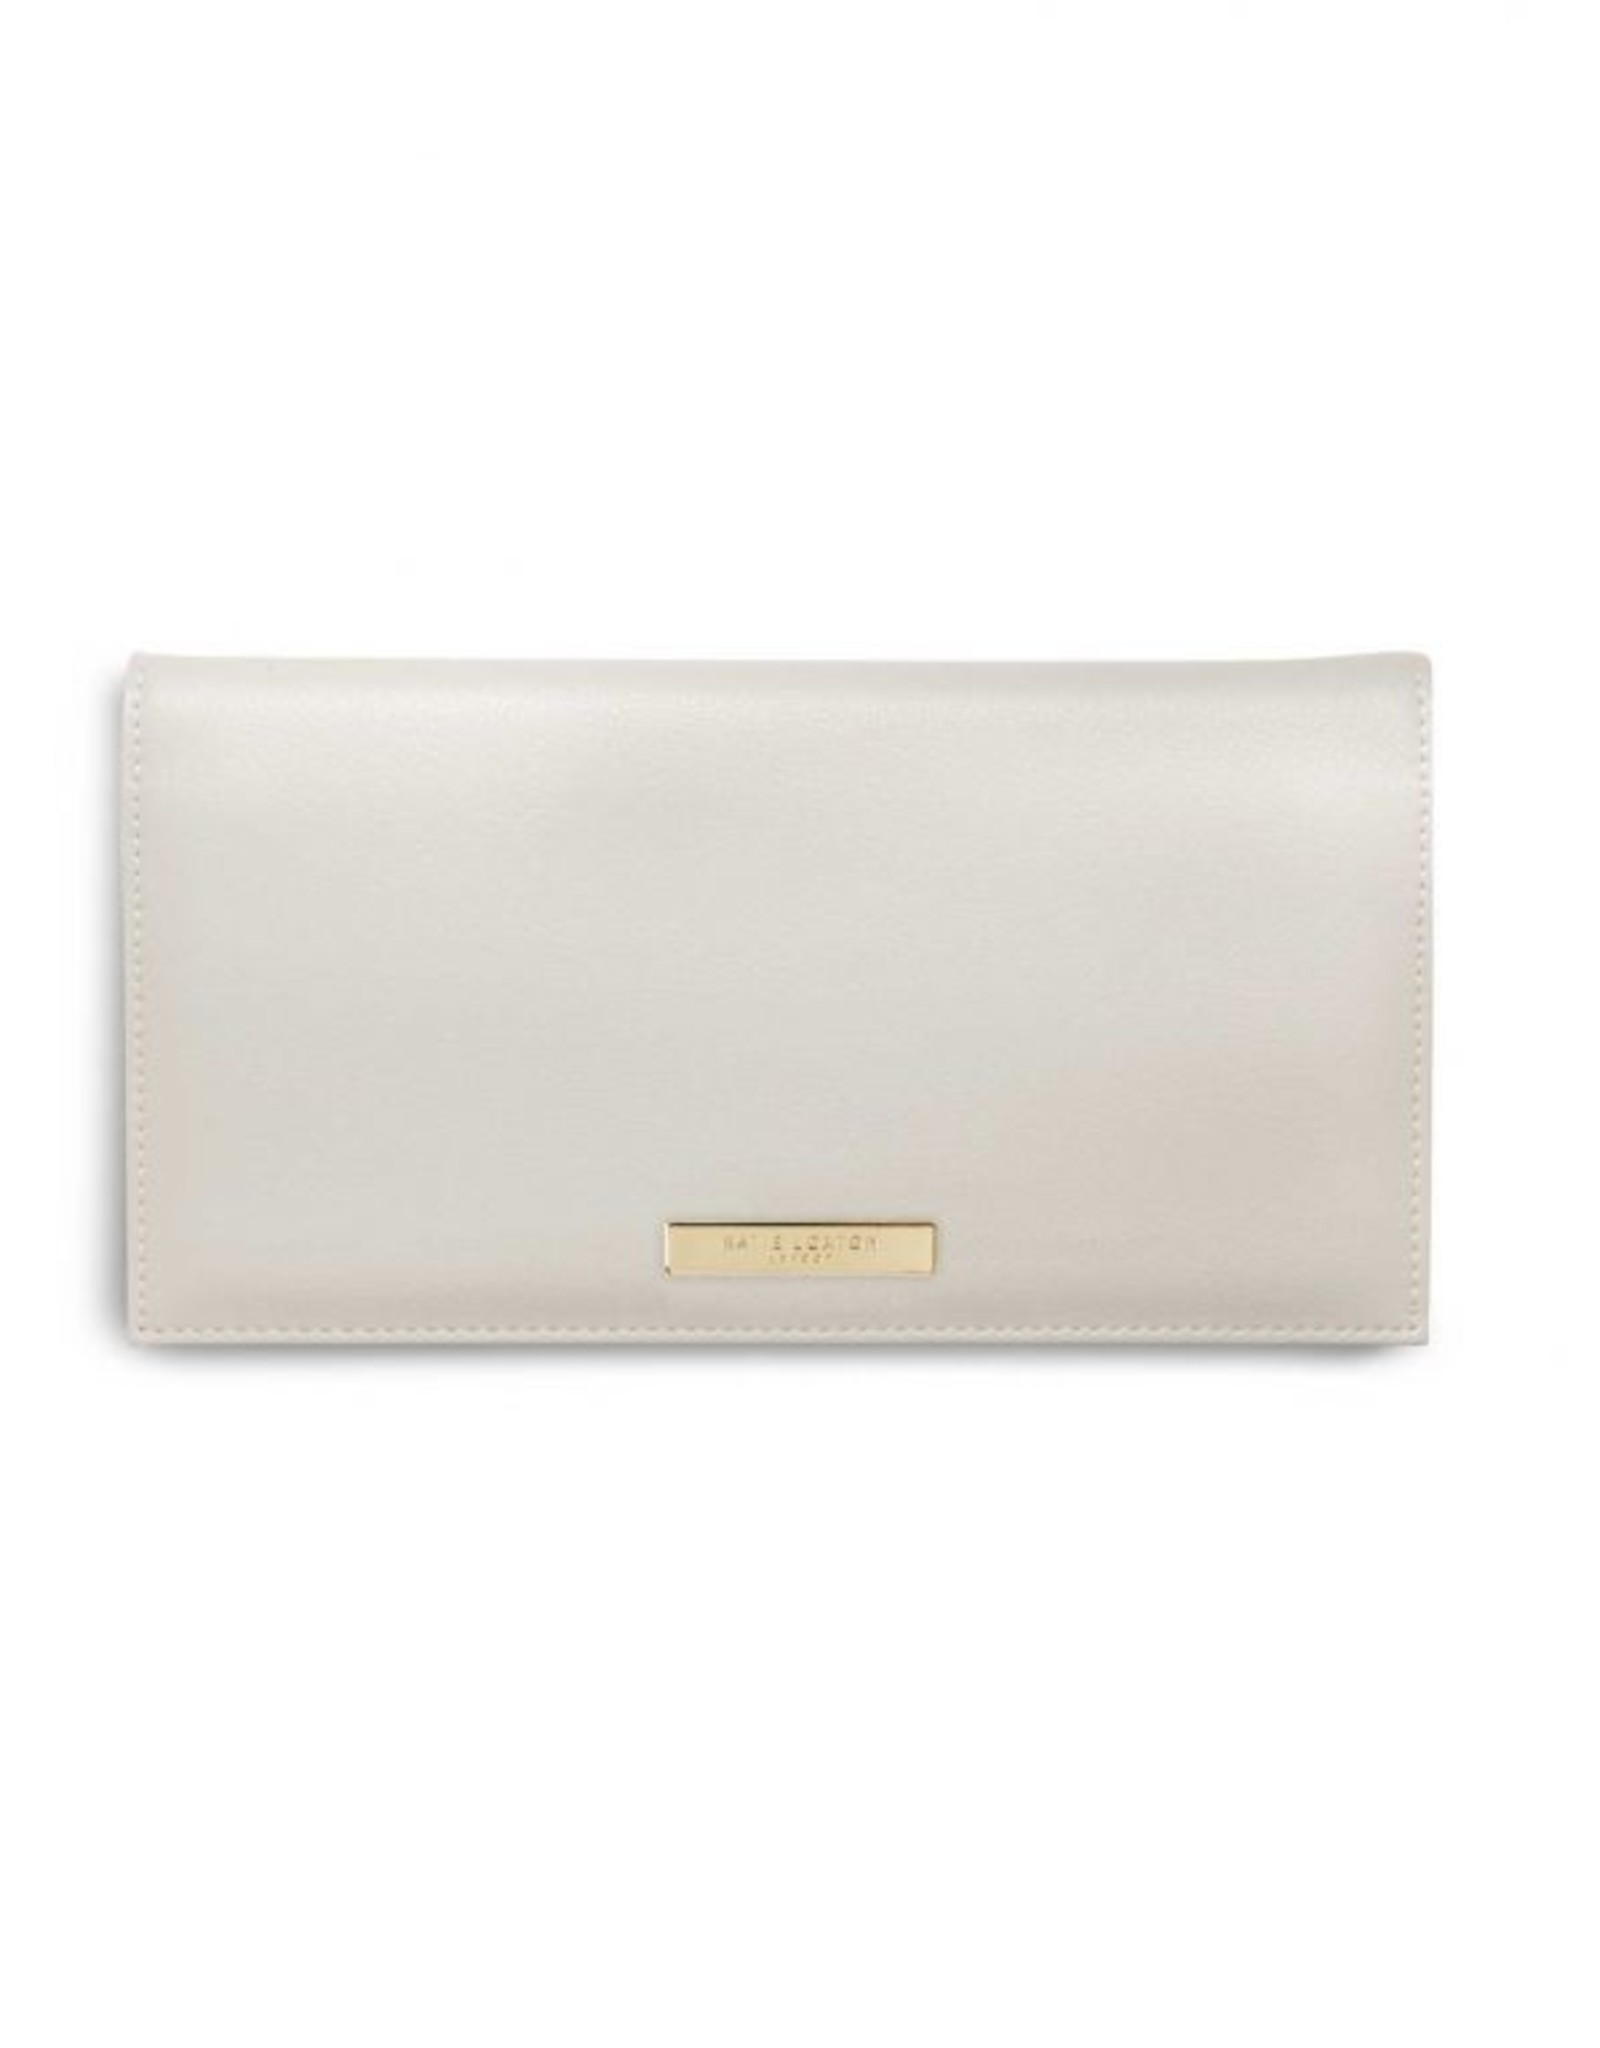 Katie Loxton SECRET MESSAGE WALLET - TIME TO SHINE